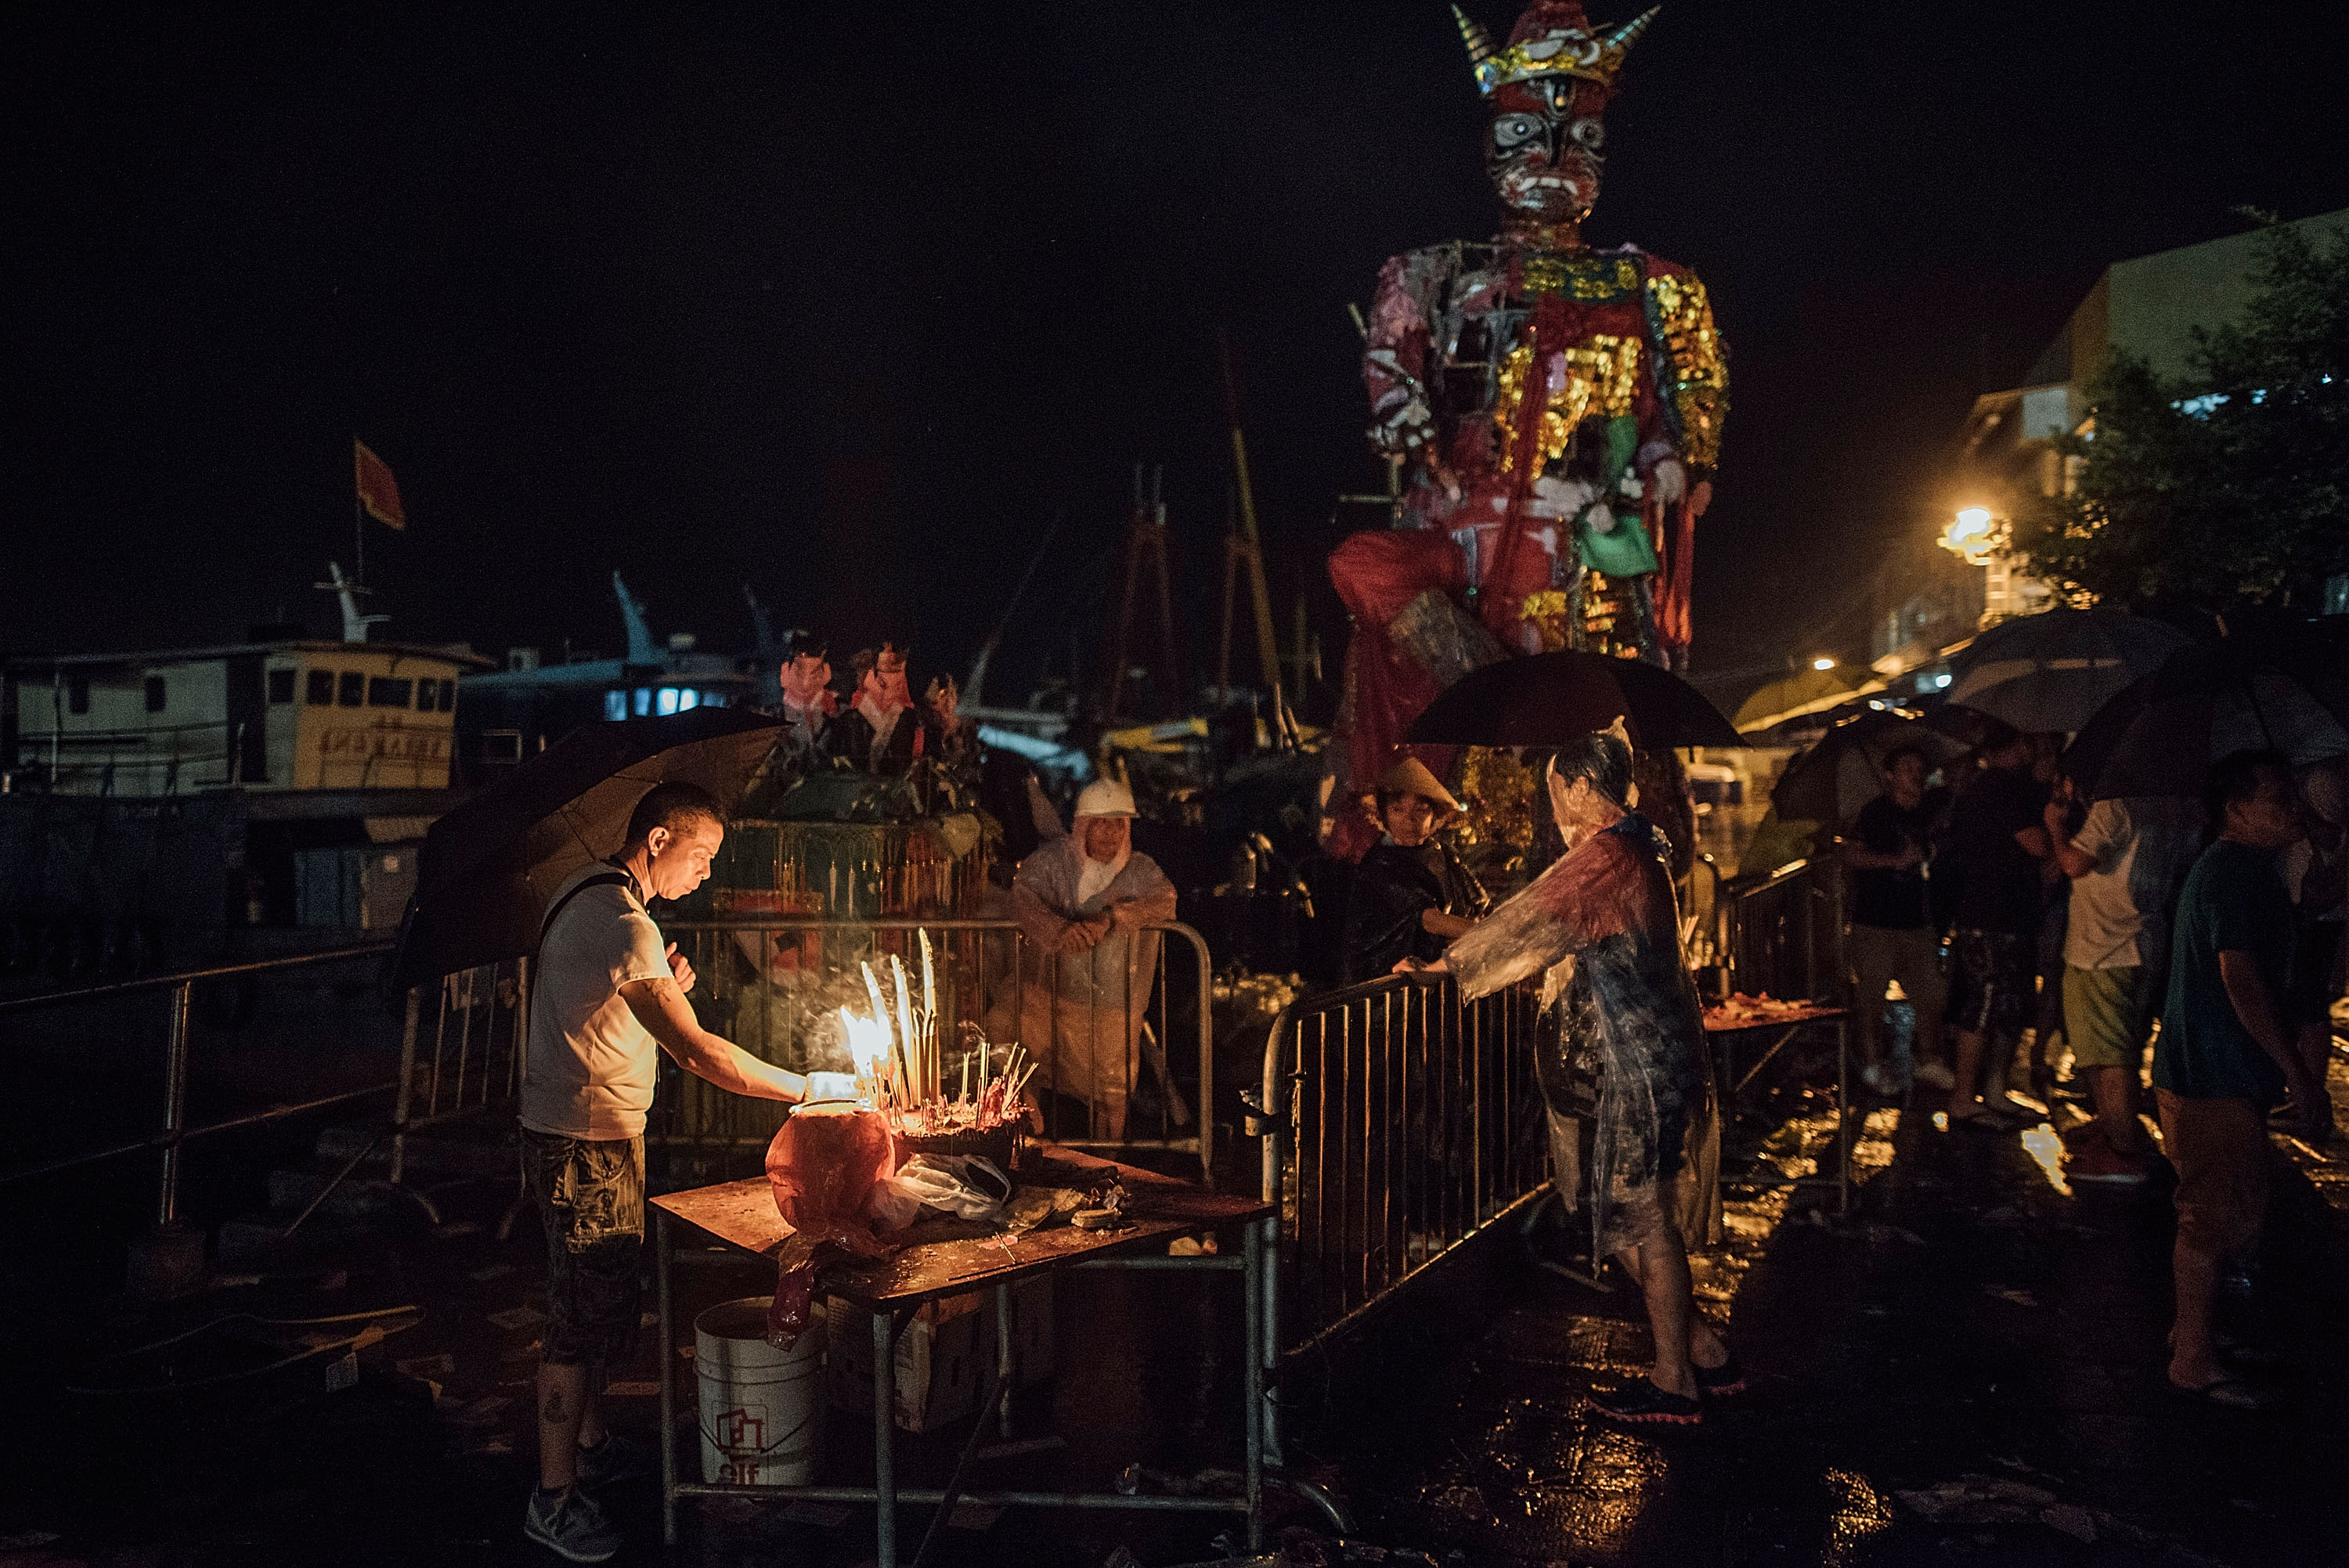 "HONG KONG - MAY 25:  People make offerings to the ""Demon God"" during the Bun Festival on May 25, 2015 on Cheung Chau Island in Hong Kong. One of Hong Kong's most colourful cultural celebration events, Cheung Chau Bun Festival, will be staged on 25 May 2015 (Monday) until 26th May 2015 midnight (Tuesday). The festival has over 100 years of history. Every year, thousands of people descend upon the tiny island for The Piu Sik (Floating Colours) Parade, Lucky Bun (Ping On Bun) and The Bun Scrambling Competition, the ancient custom during the festival. The tradition has been passed down for generations. To ensure the tradition keeps passing on, every year, Cheung Chau Islanders fuse the new elements with the custom to draw the attention from the young. This year, 'K-Pop stars' will be featured by one of the Piu Sik parade teams, the first-ever 'Ping On (Lucky) Macaron' with Chinese tea favour is invented, and more to be found out on the island.  (Photo by Anthony Kwan/Getty Images for Hong Kong Images)"